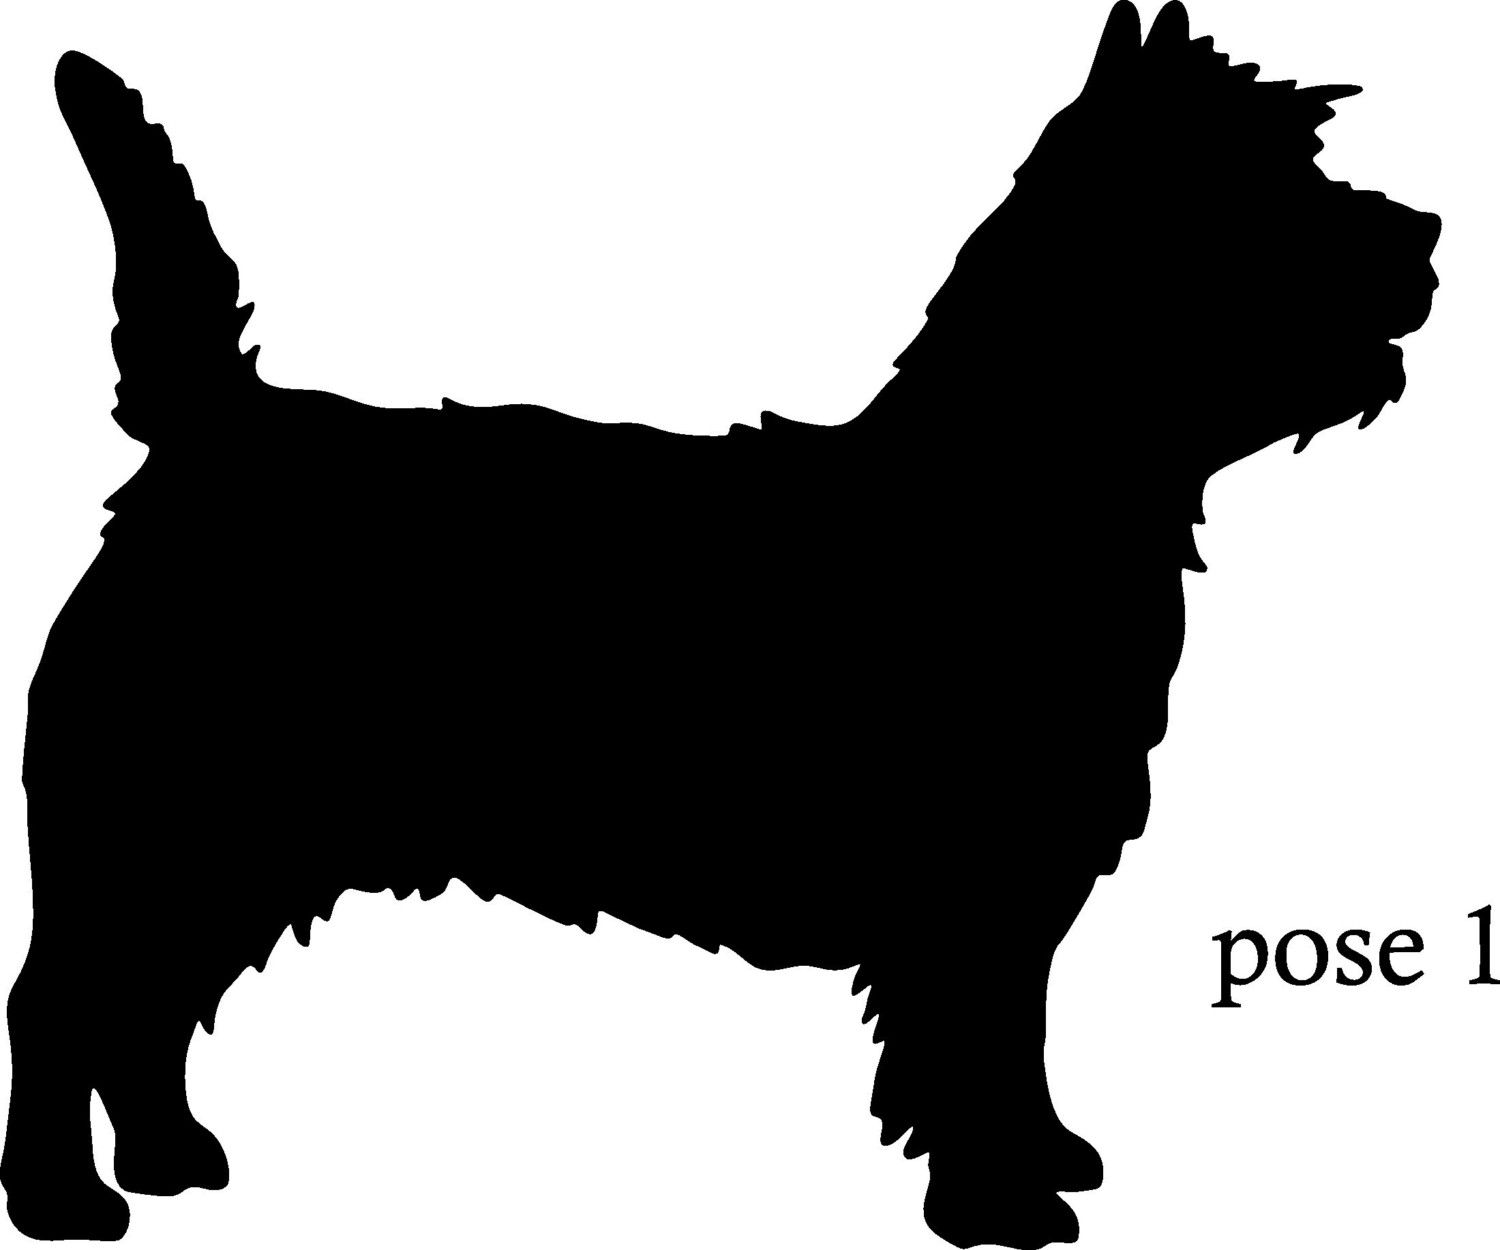 6 Inch Cairn Terrier Vinyl Dog Silhouette Decal 5 95 Via Etsy